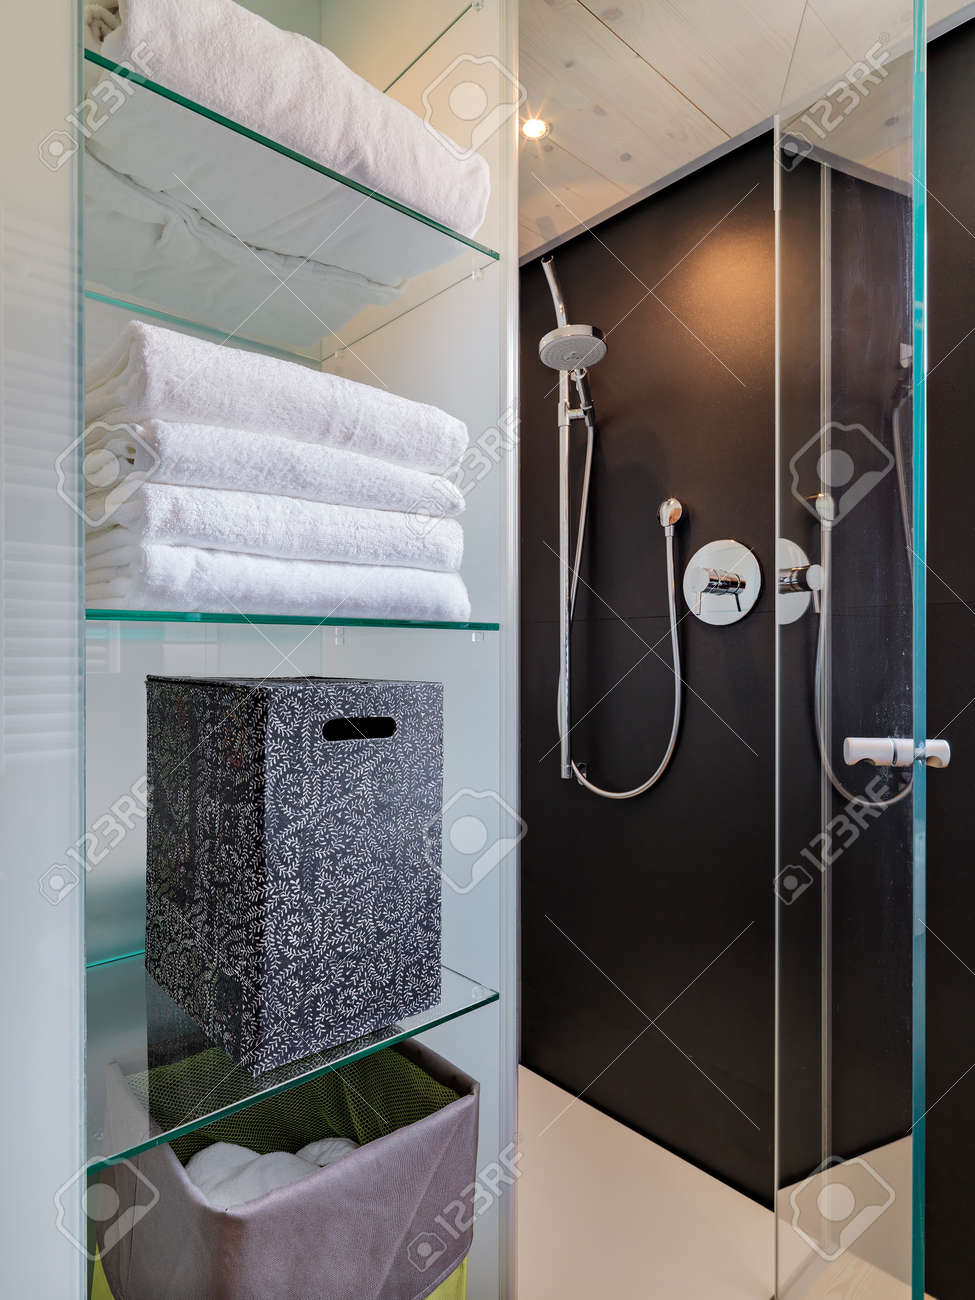 Glass box bathroom - White Towel And Box On The Glass Shelves Overlooking On Glass Shower Cubicle In The Modern